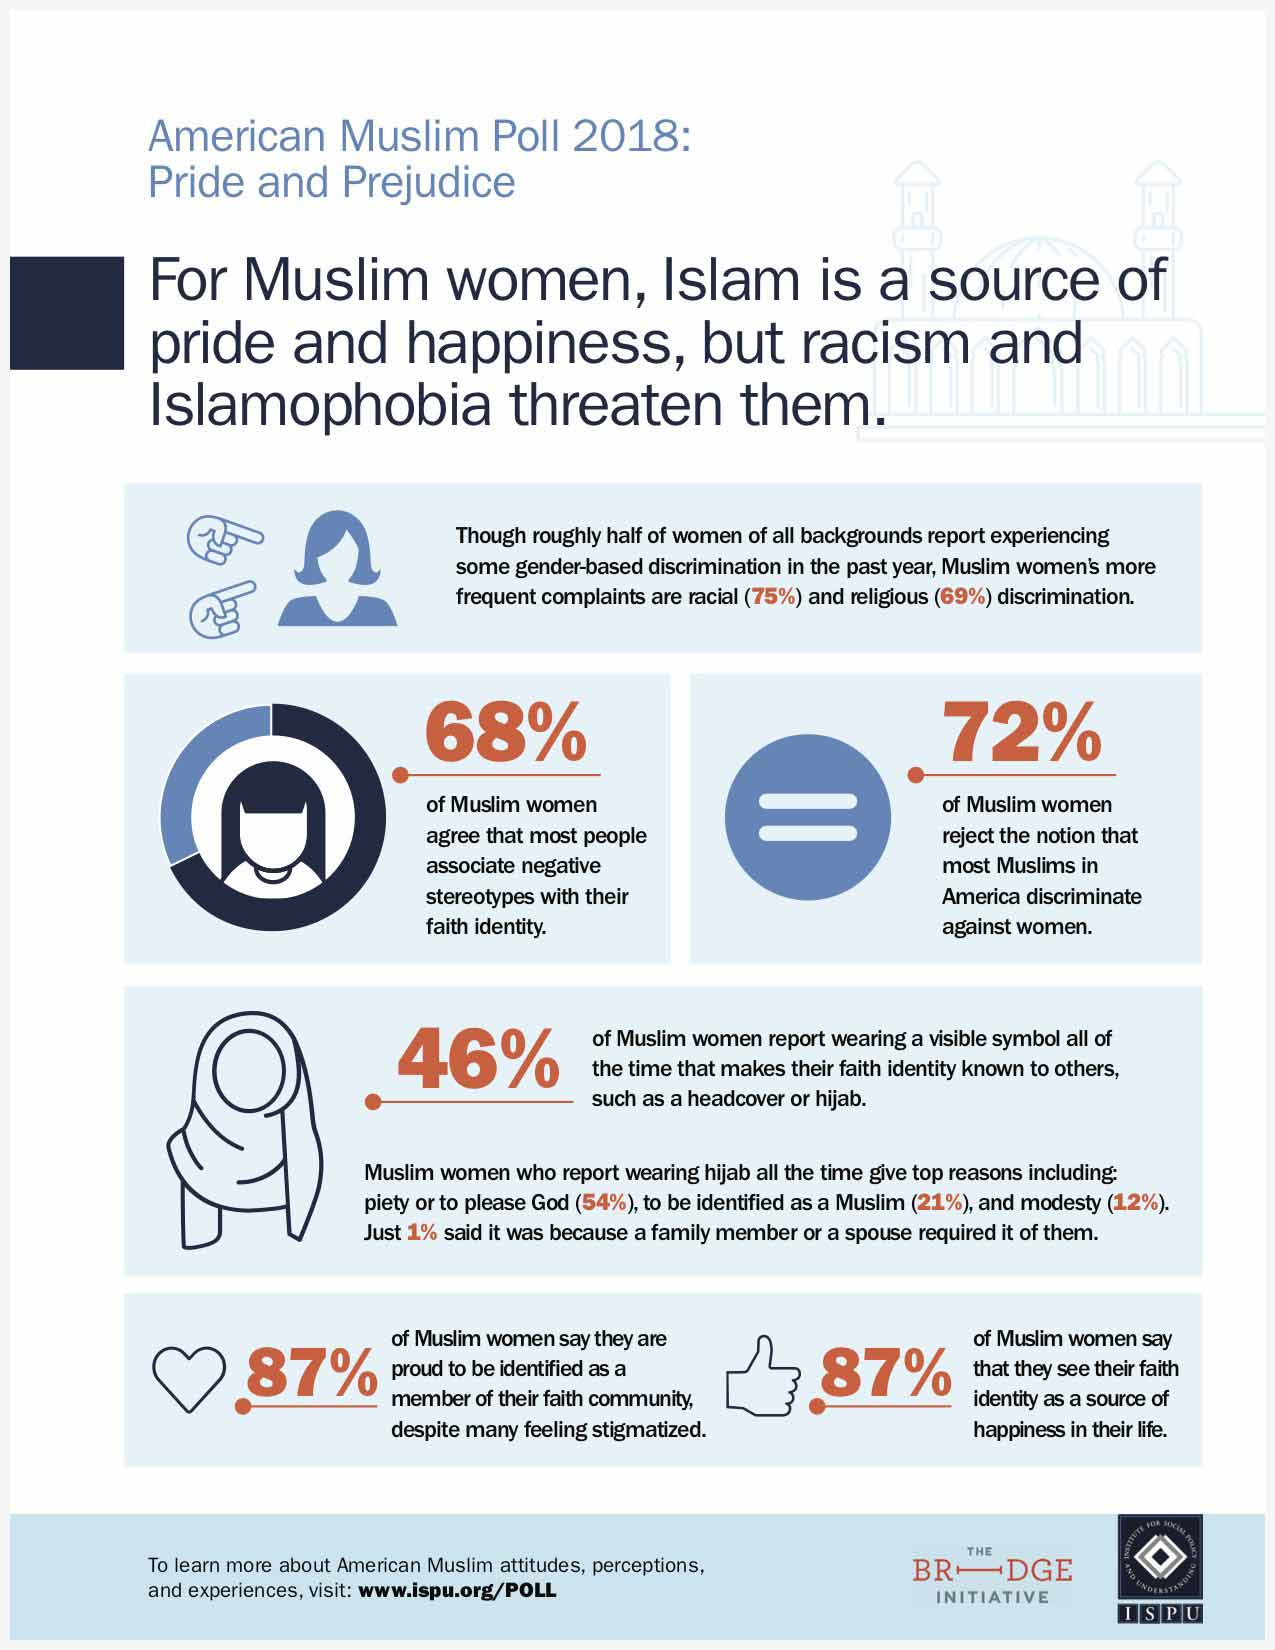 For Muslim women, Islam is a source of pride and happiness, but racism and Islamophobia threaten them infographic